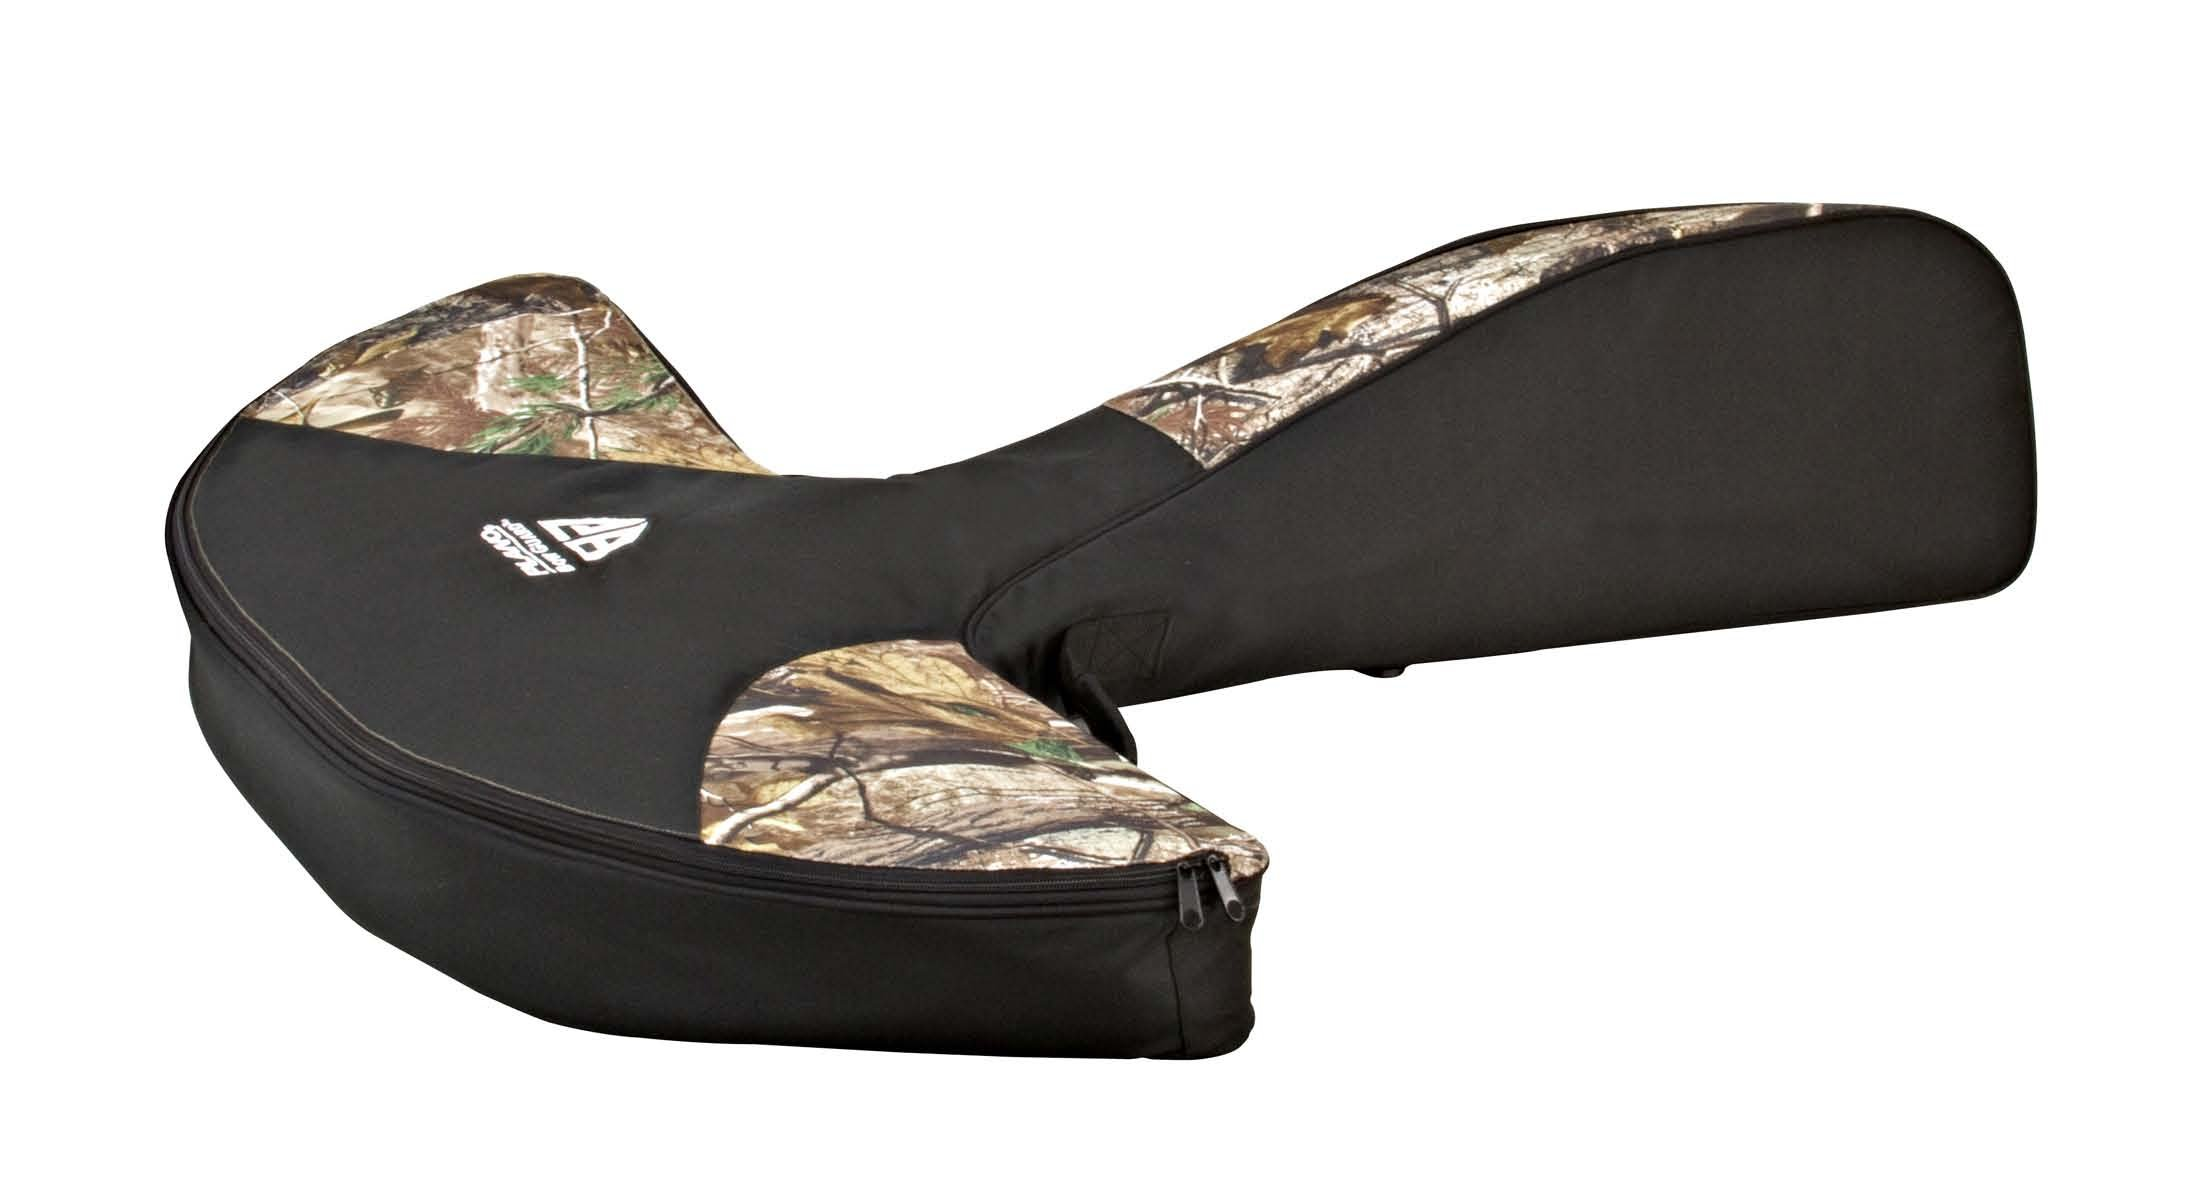 Plano Soft-Sided Cross Bow Case (Camo and Black)